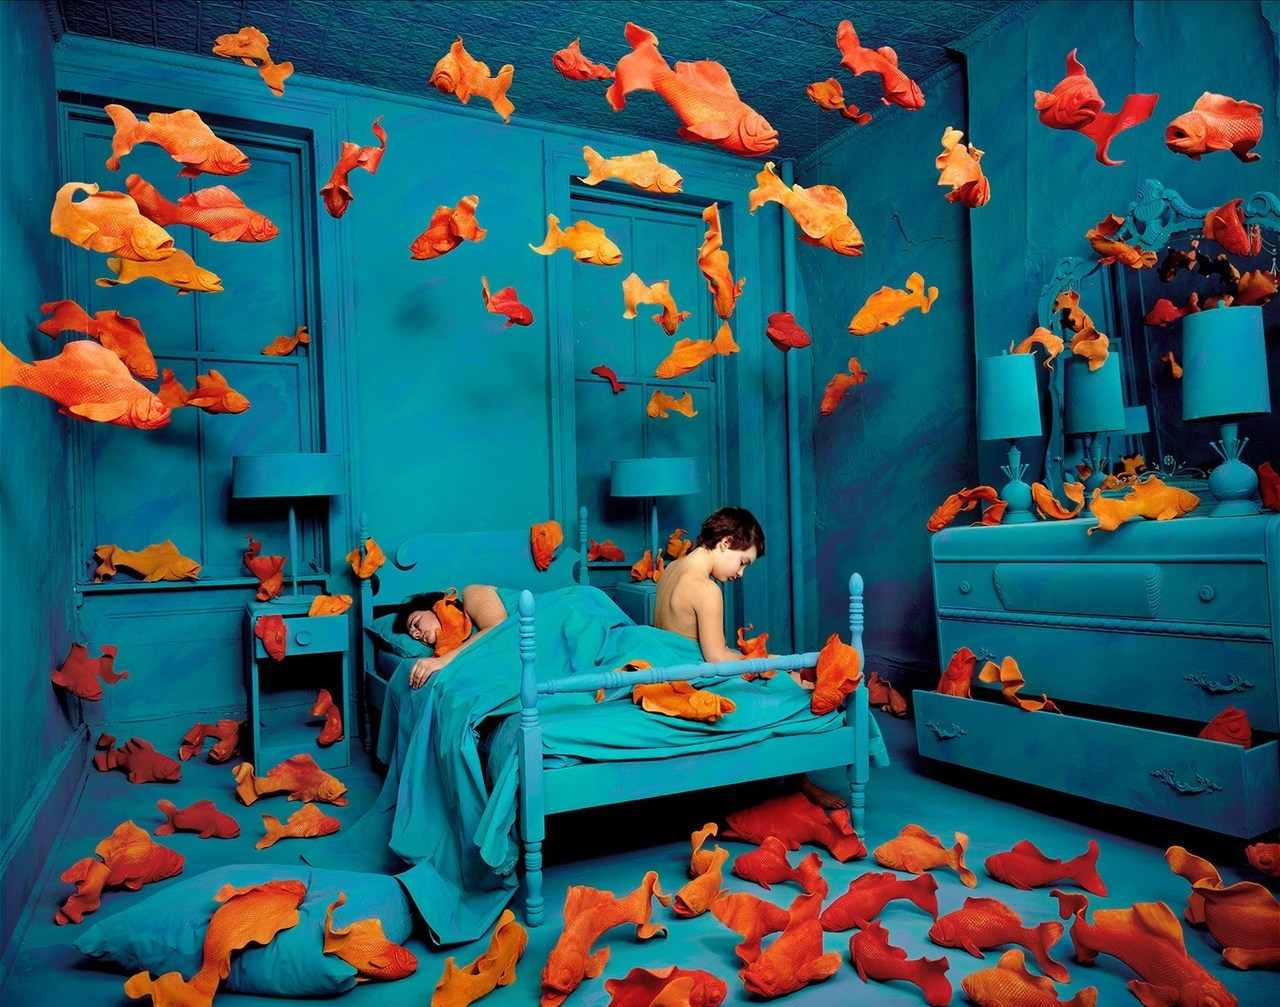 noiseman:  Revenge of the Goldfish by Sandy Skoglund, 1980.